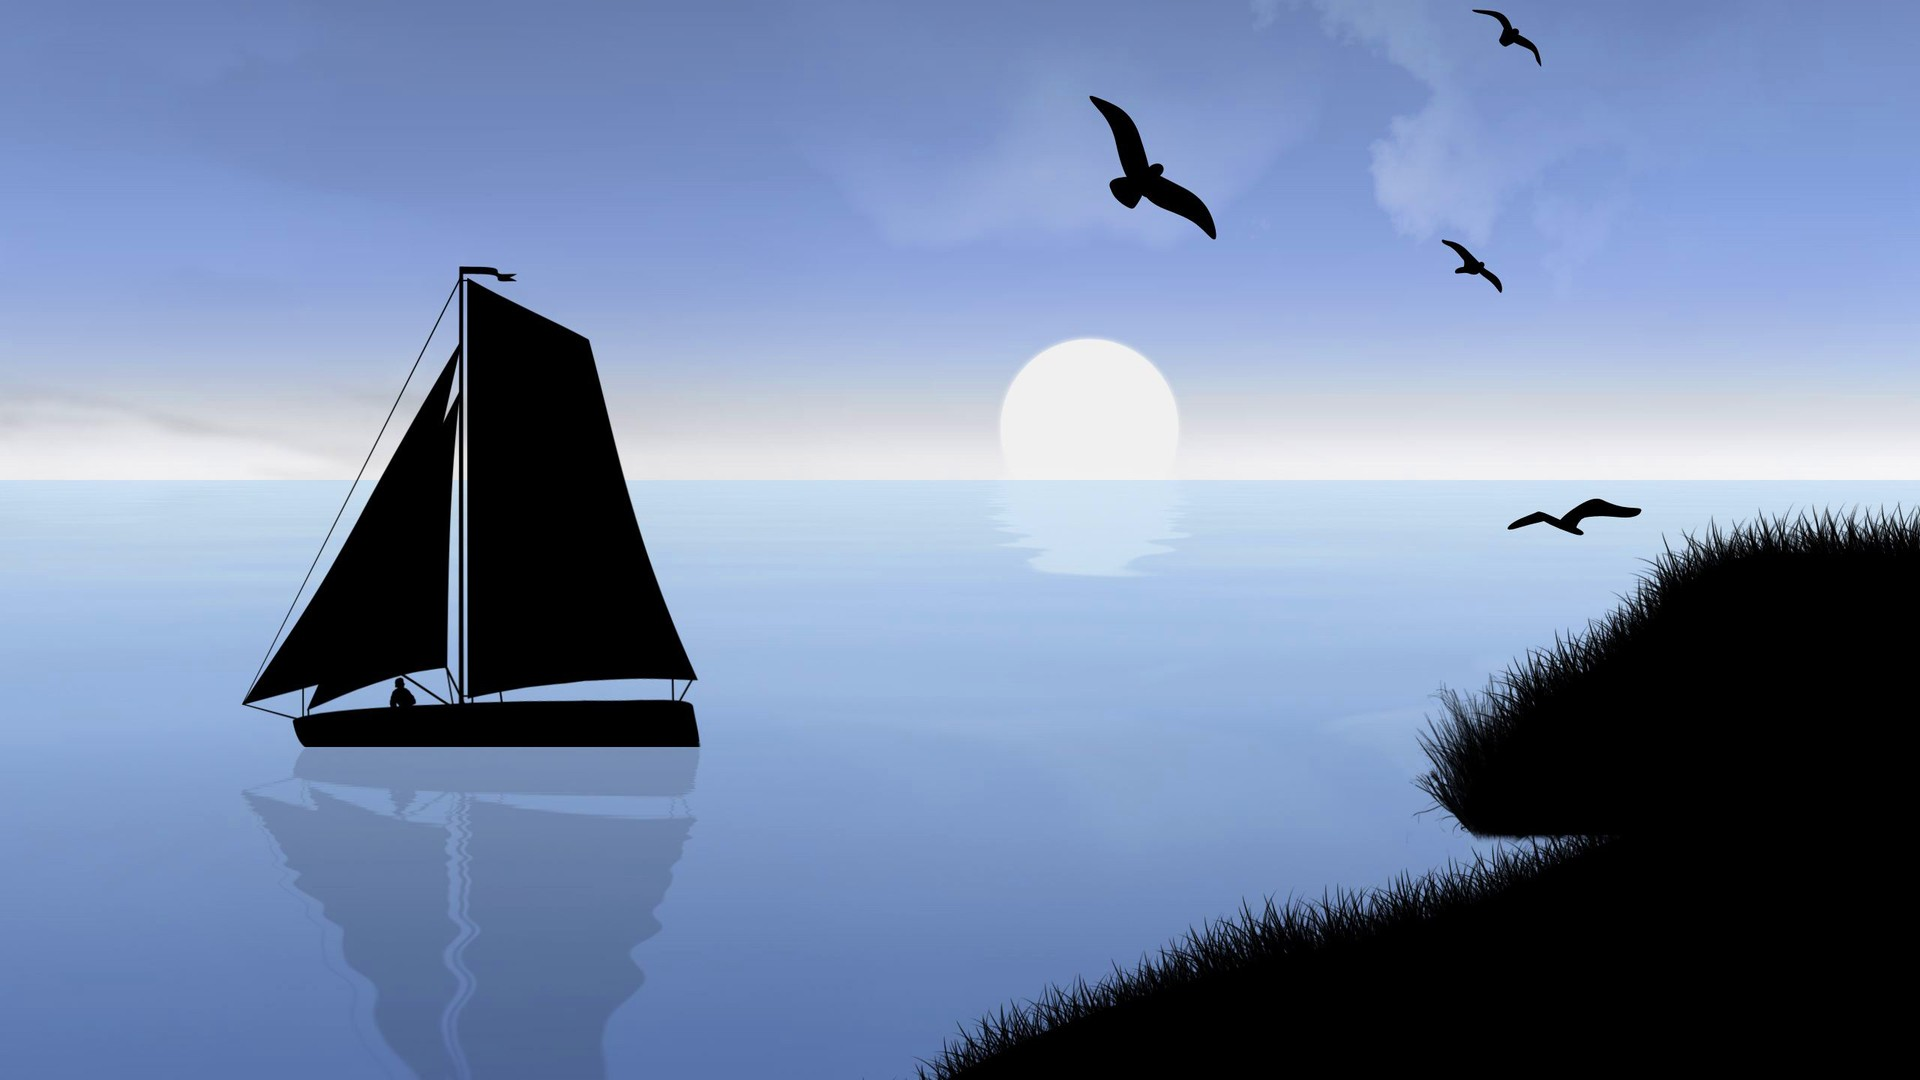 General 1920x1080 digital art landscape water sea men coast grass birds night Moon silhouette reflection clouds minimalism